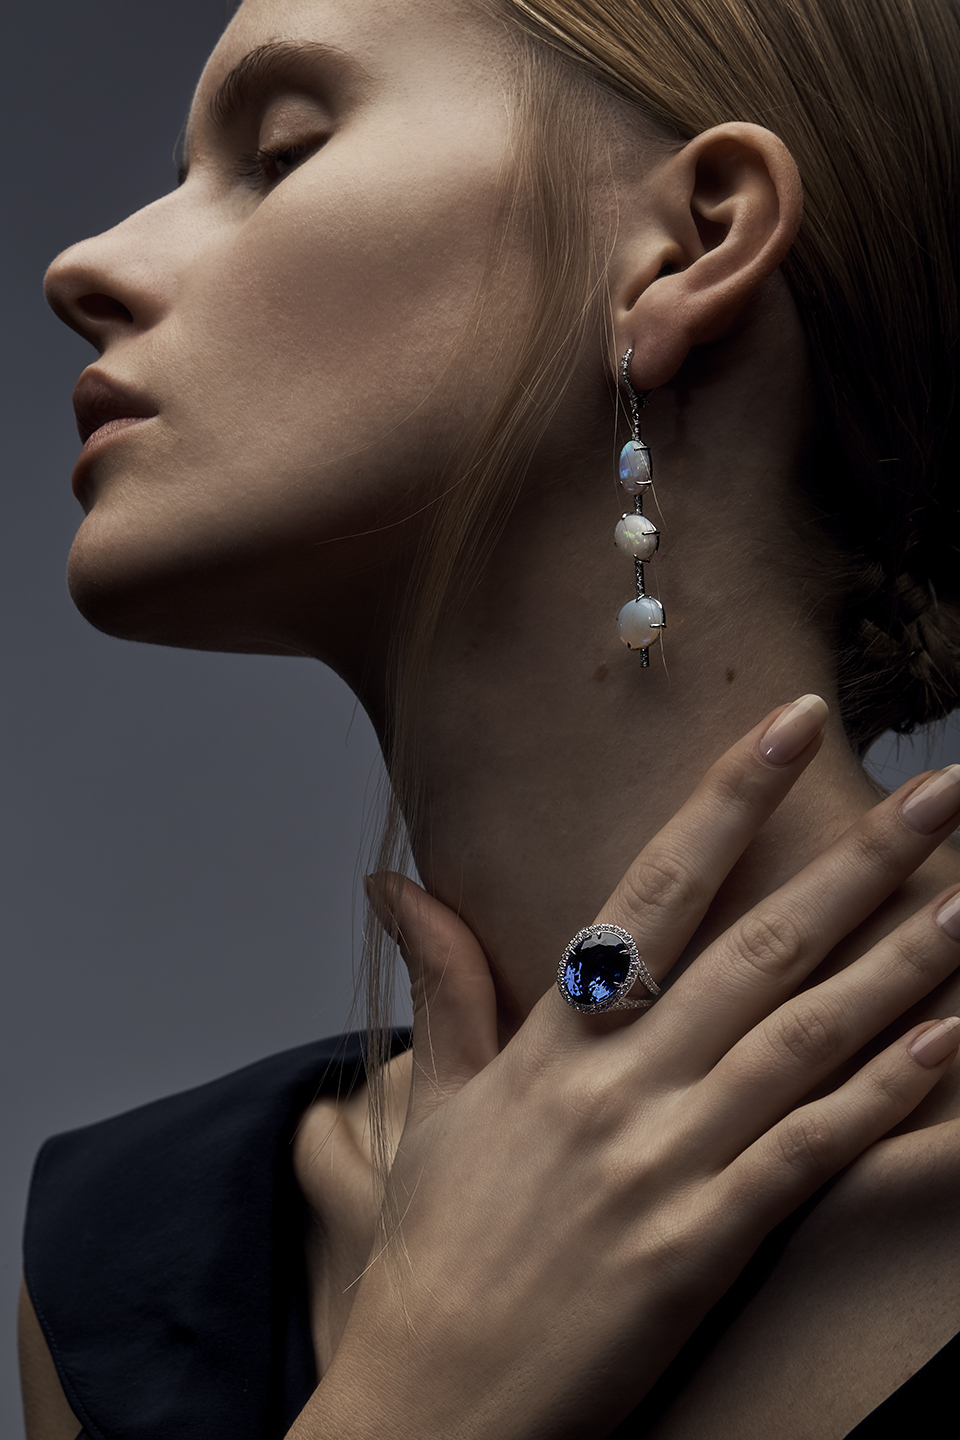 CLO EARRINGS   18K GOLD 0.52 CT OF DIAMONDS 10.16 CT OF OPALS      SARA RING   1.20 CT OF DIAMONDS 10.57 CT OF TANZANITE 0.8 CT OF PINK SAPPHIRES      Contact for inquiry